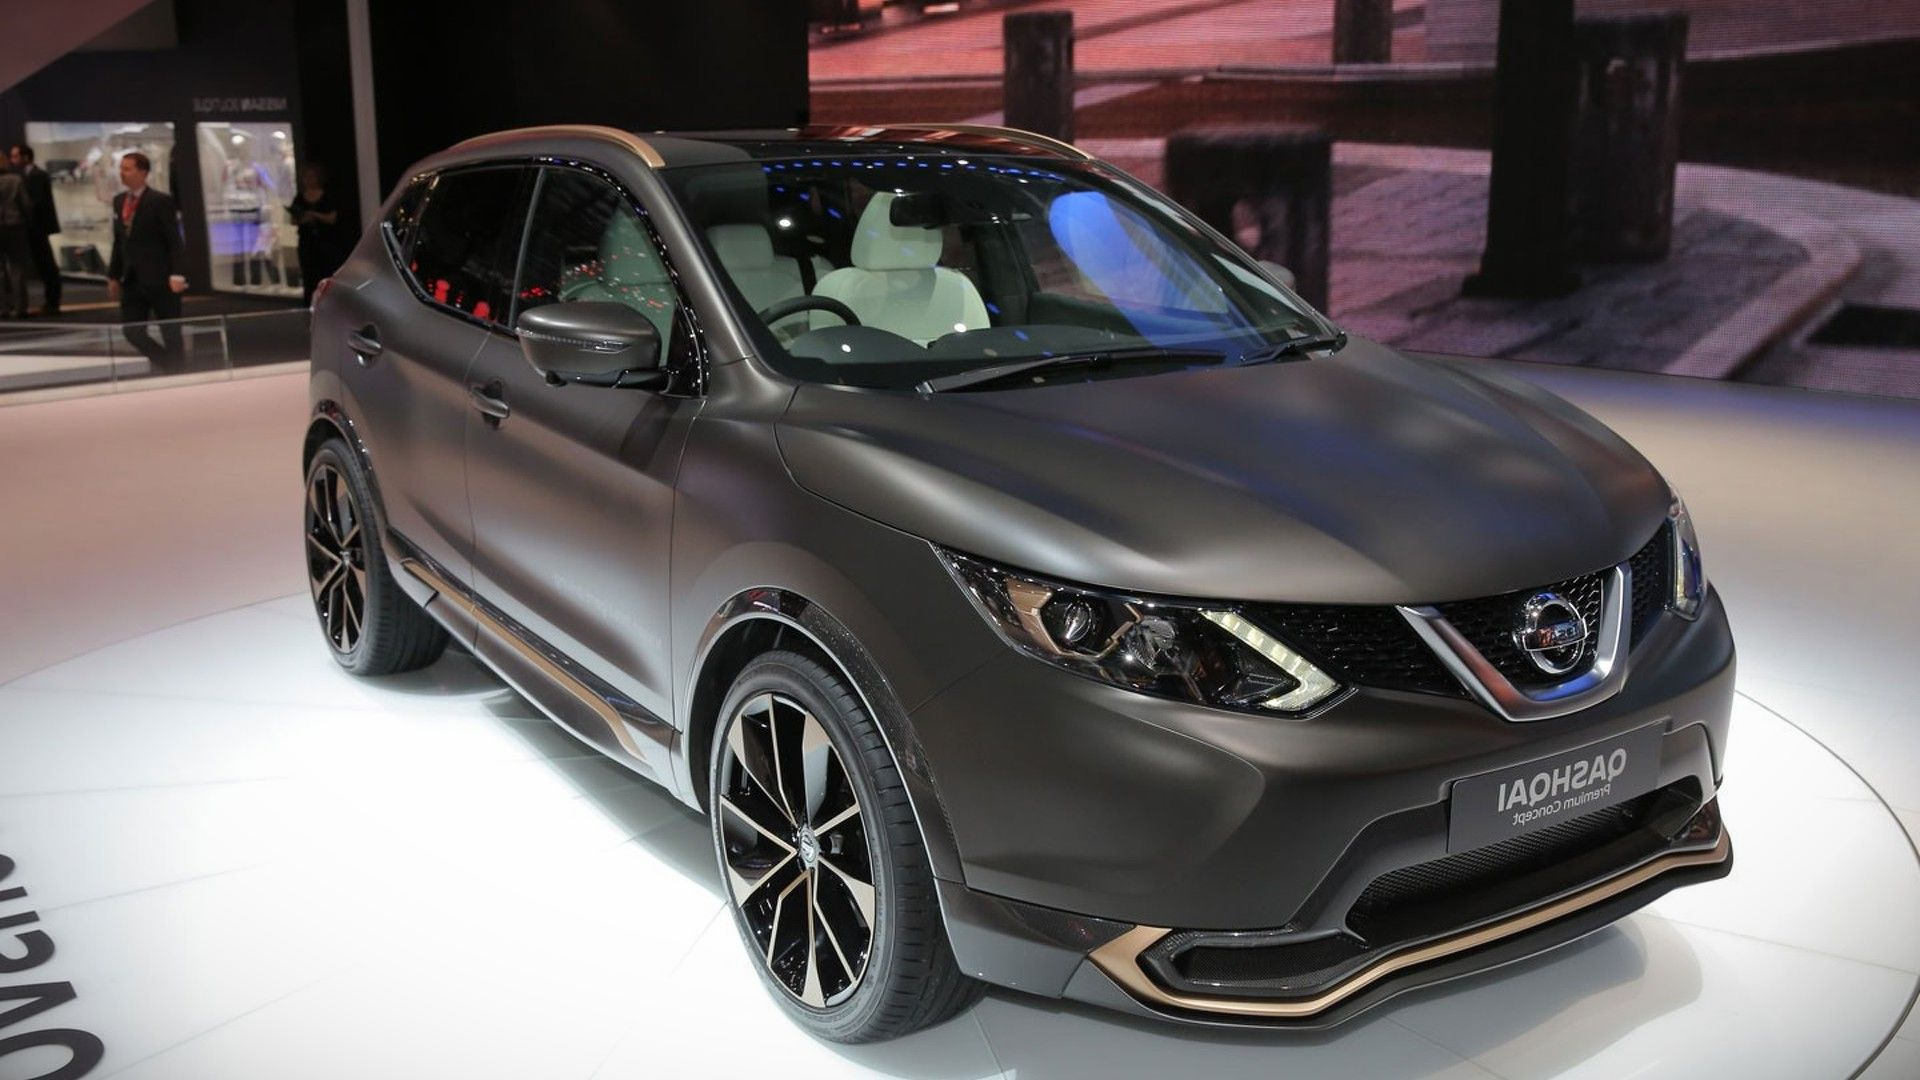 2018 Nissan Qashqai interior changes - New SUV Price